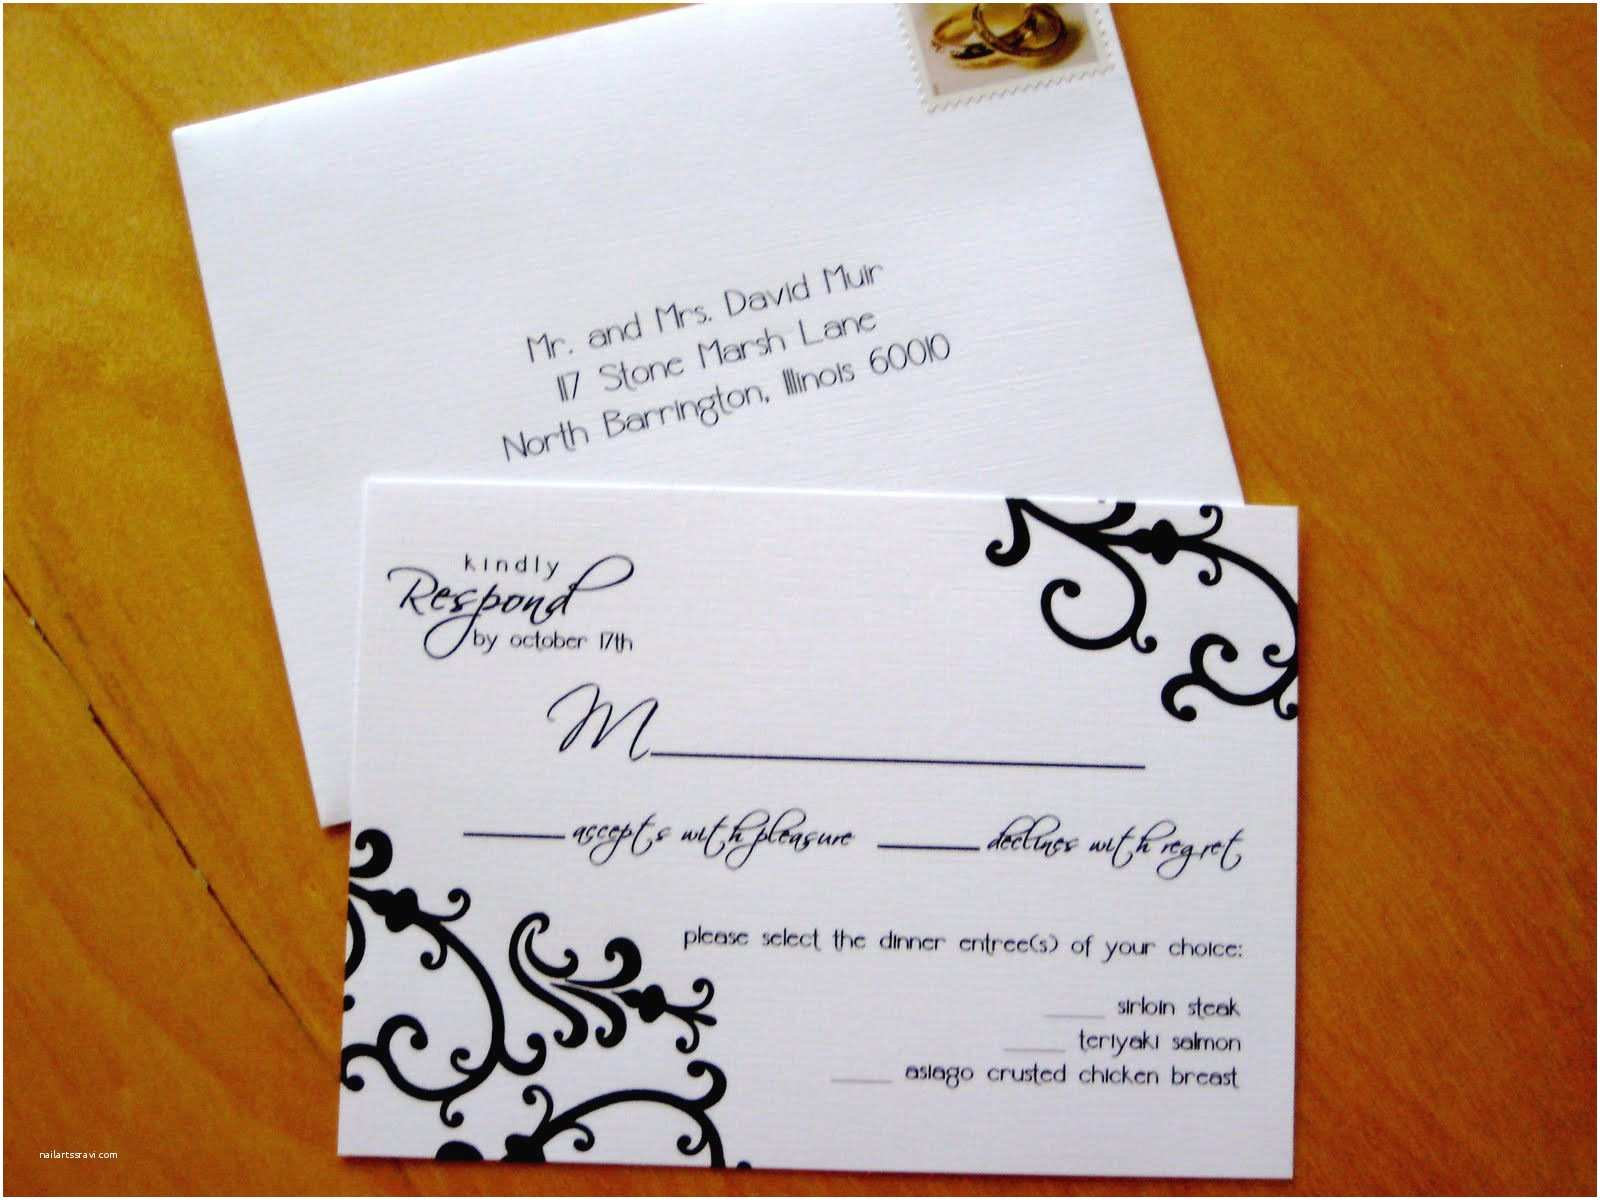 Make Your Own Graduation Invitations top 11 Cheap Graduation Invitations You Can Modify